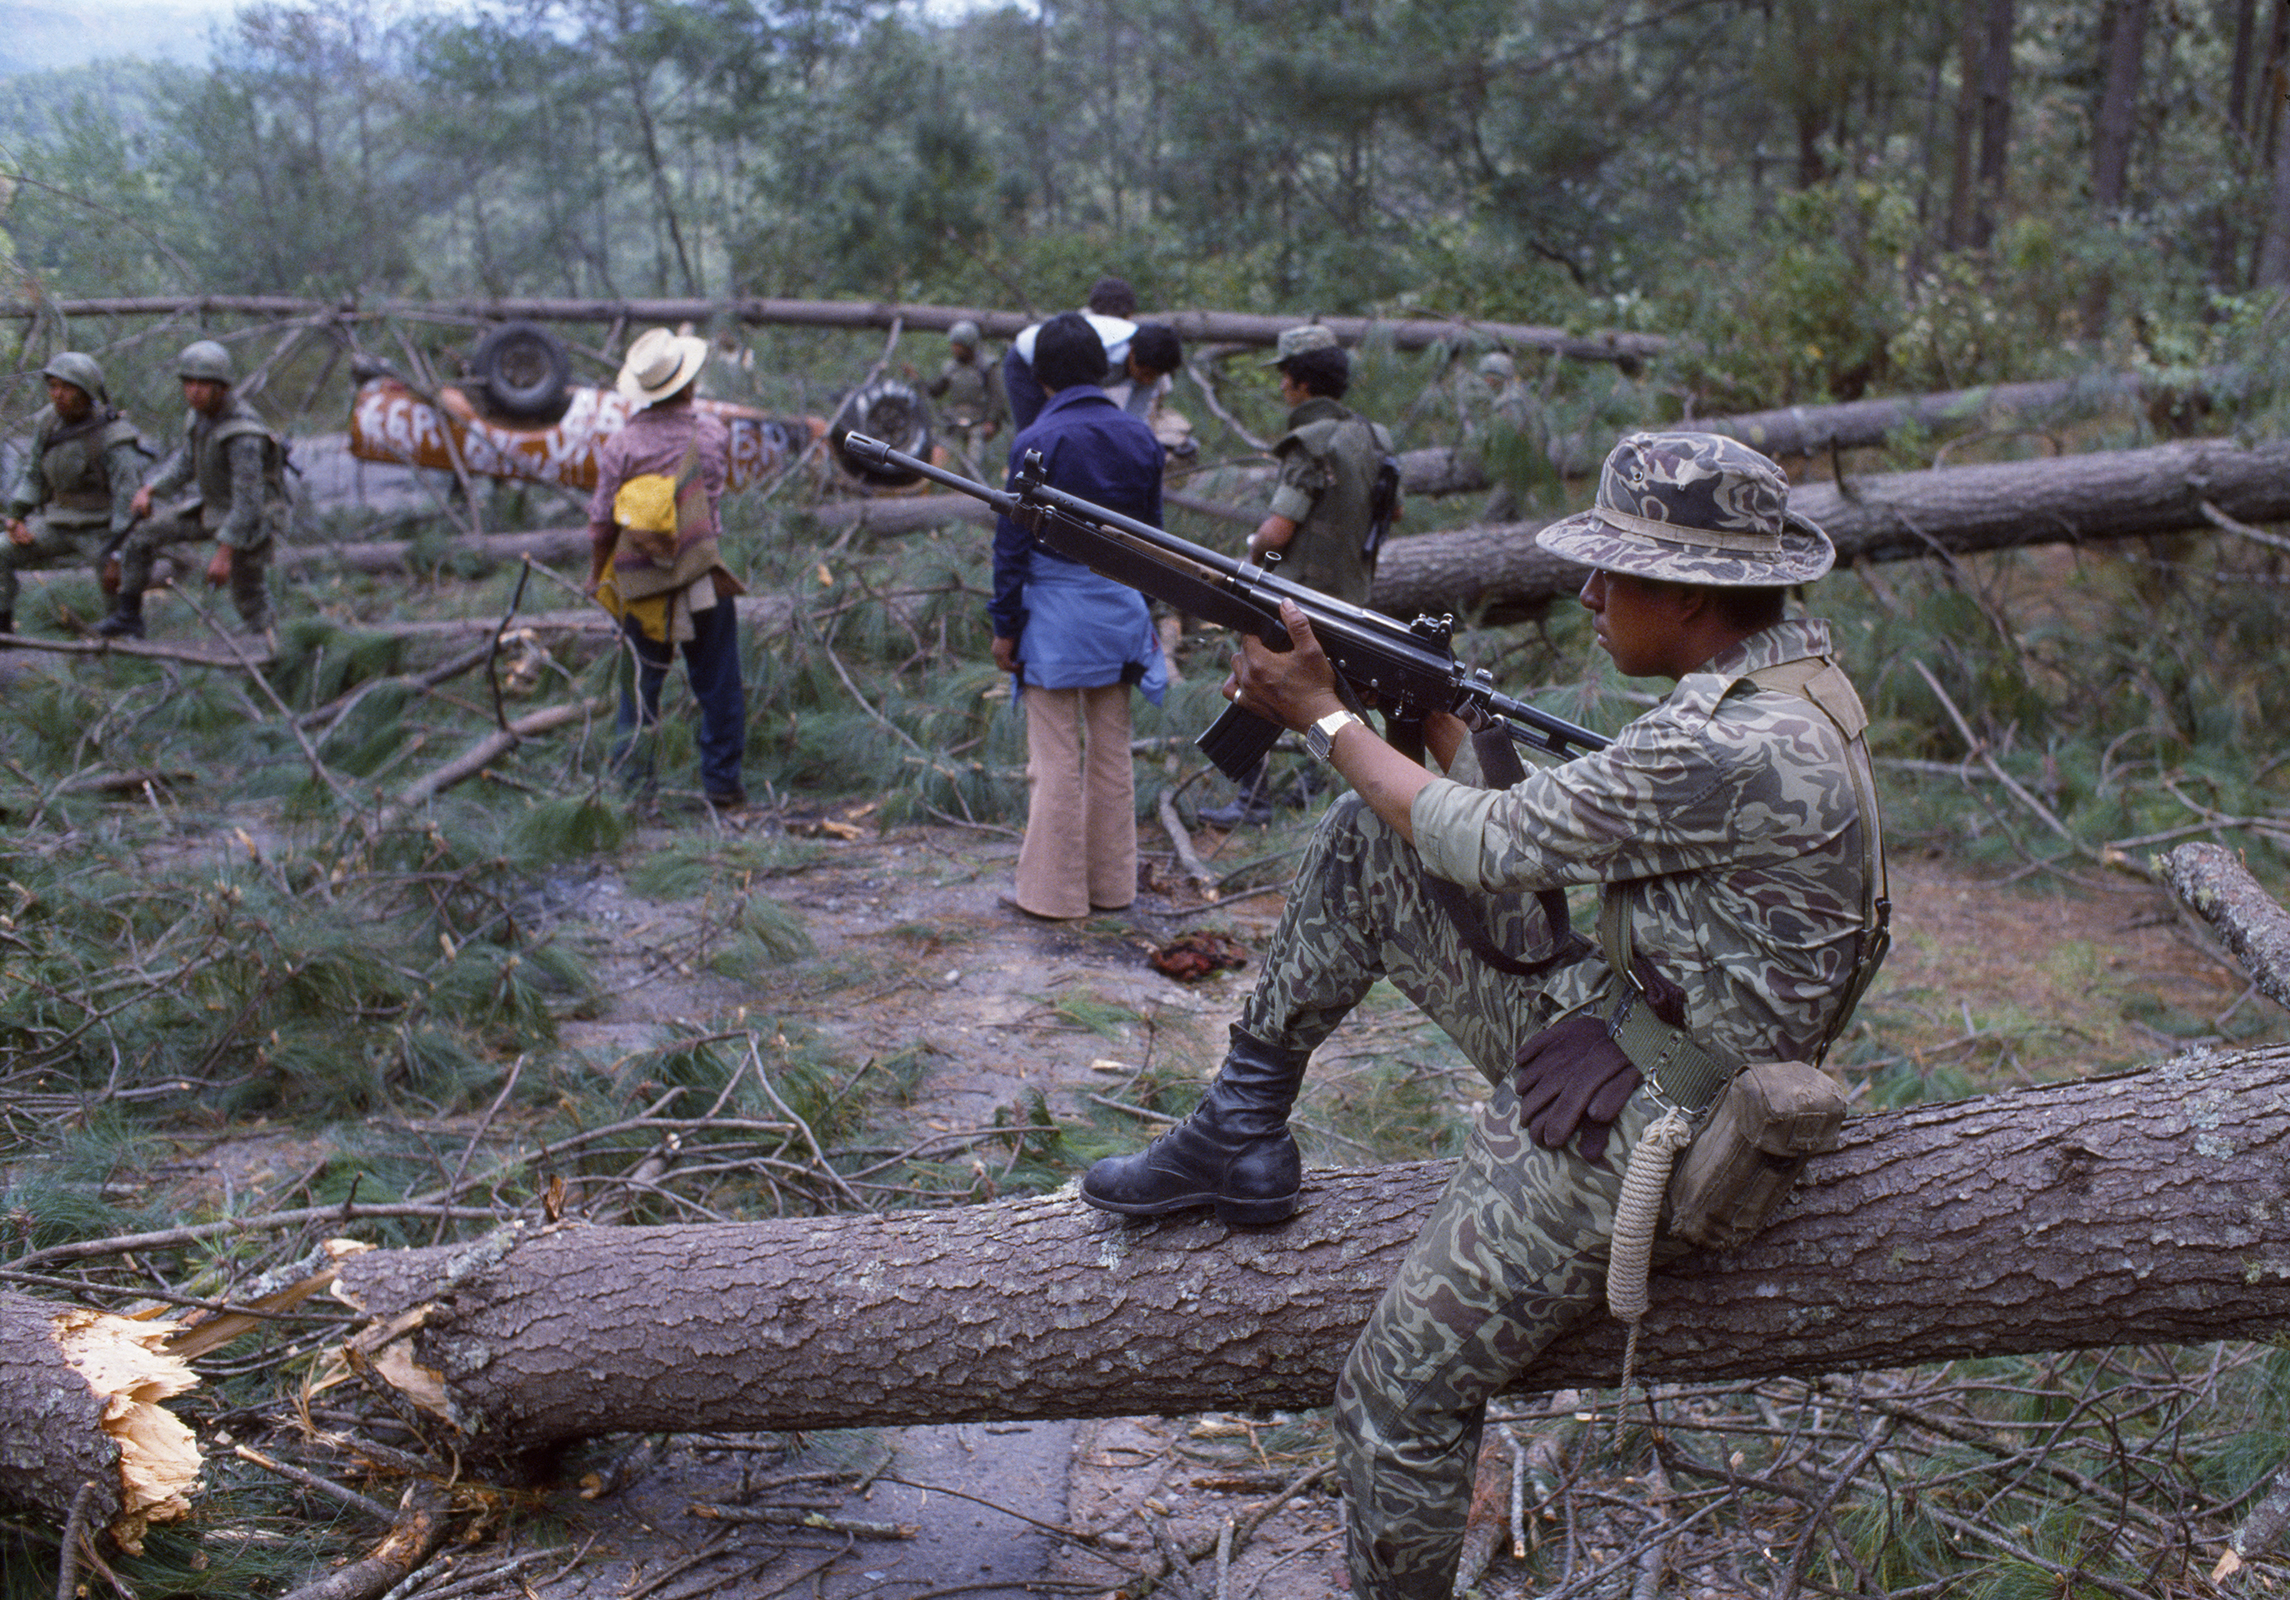 Guatemalan army soldiers, armed with Israeli-supplied Galil assault rifles, and unidentified locals clear a section of the Pan American Highway blocked by felled trees during the ongoing civil war in Los Encuentros, Guatemala March 7, 1982. The trees were cut by the Guerrilla Army of the Poor, EGP, blocking the road the day of presidential elections.